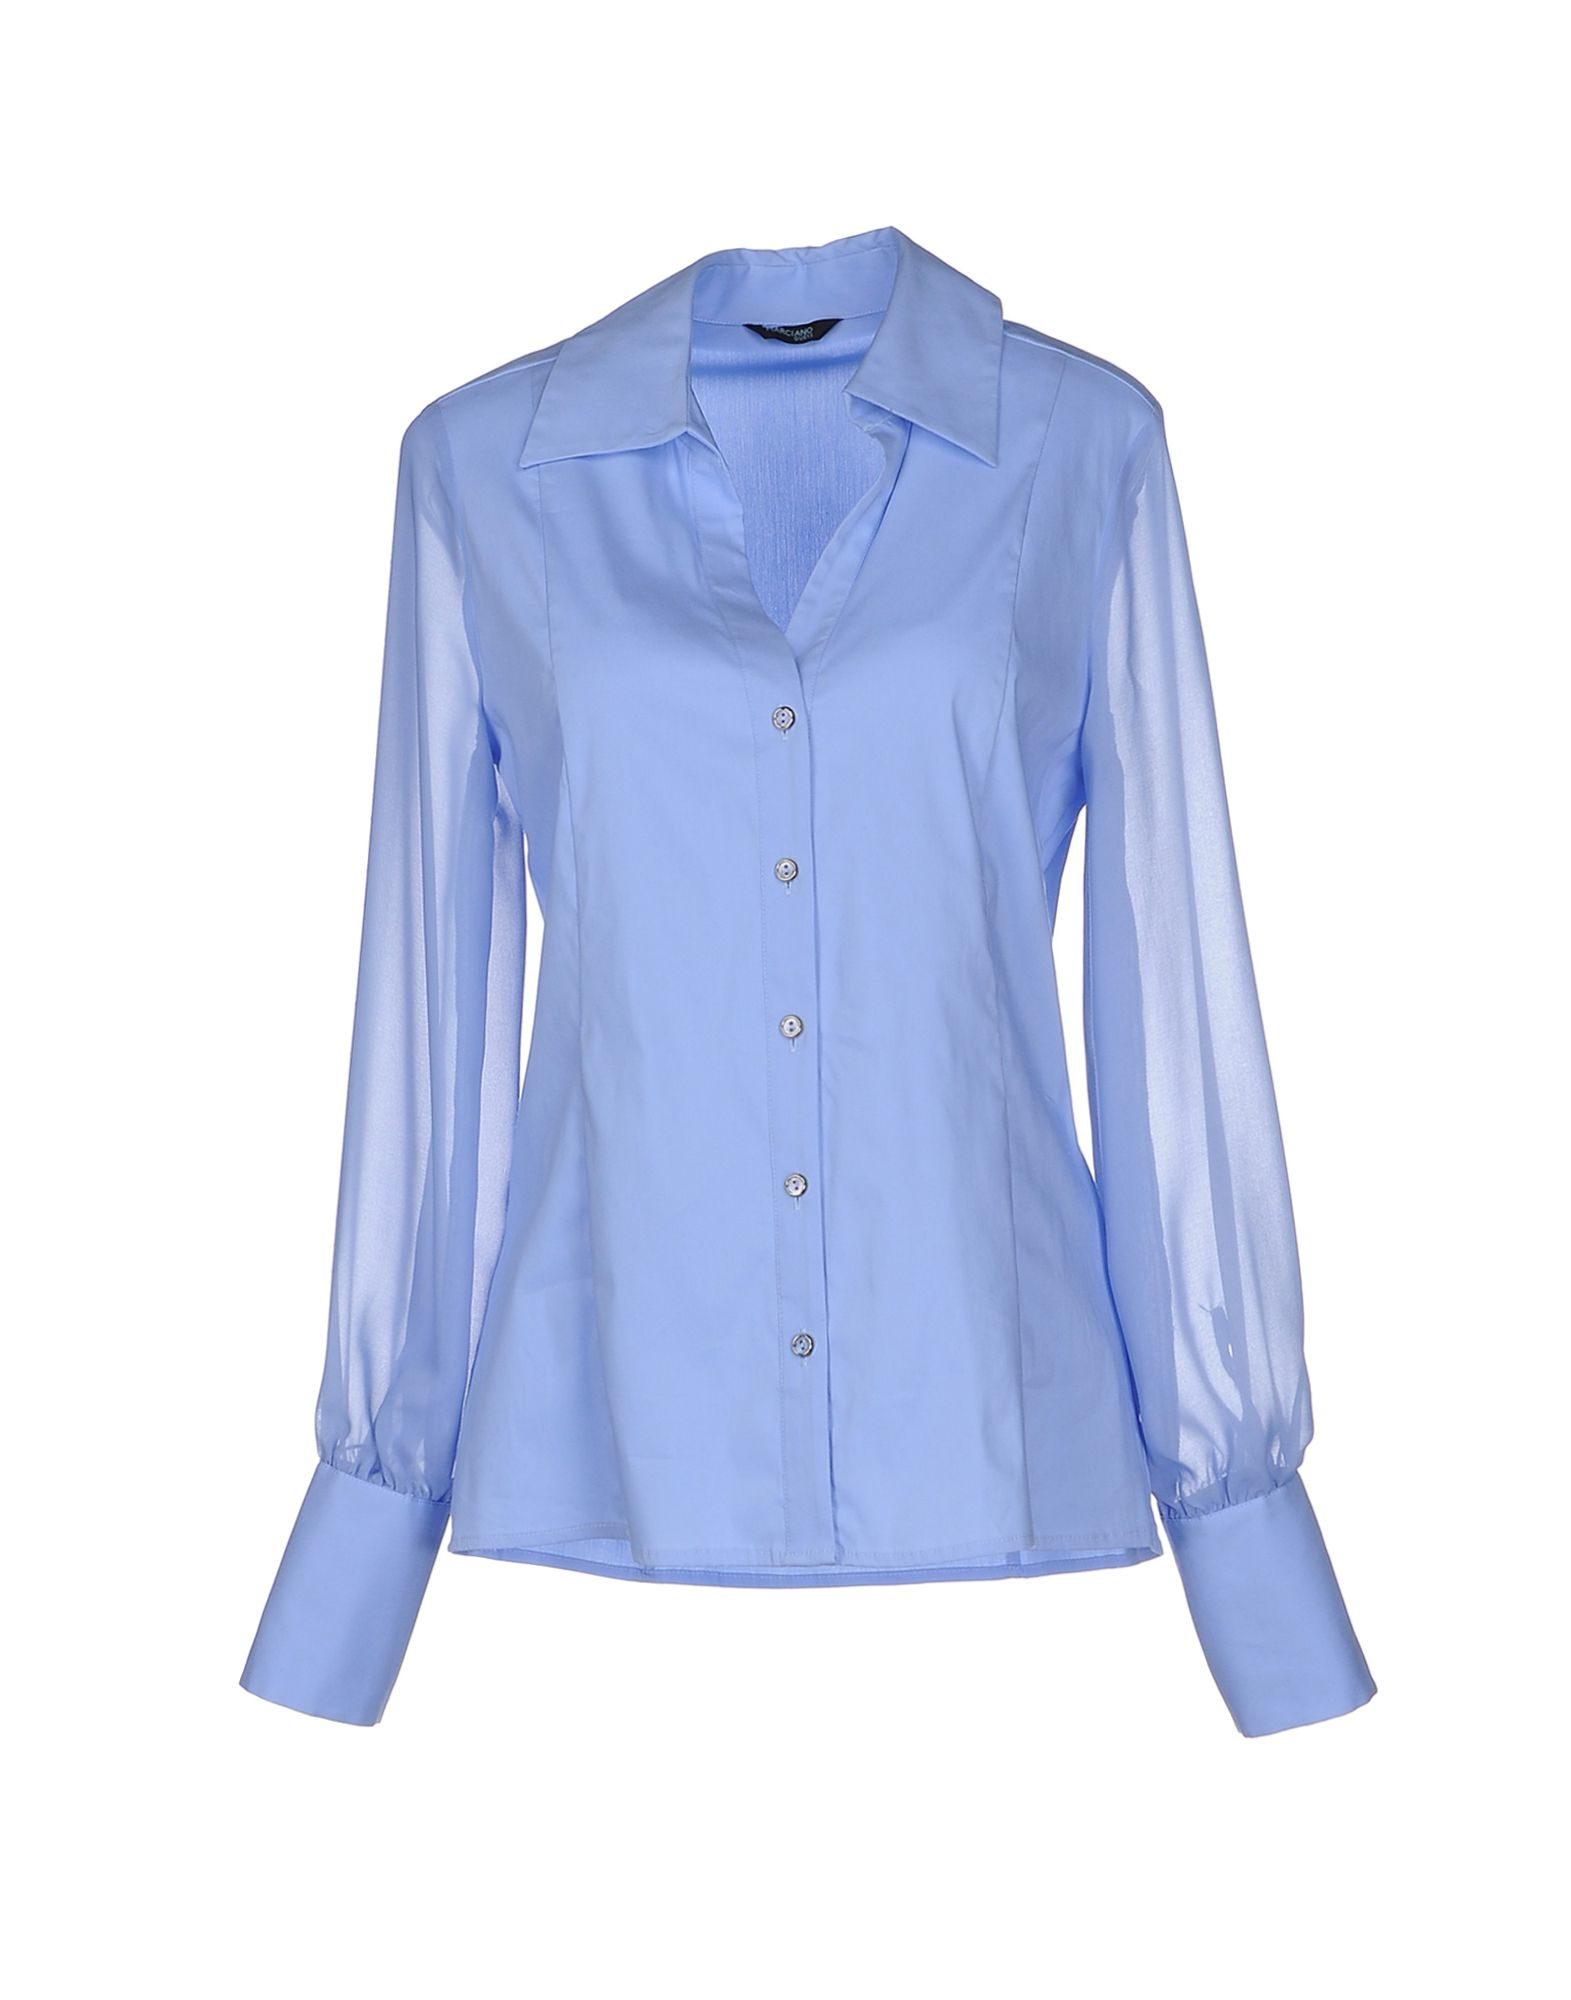 Lyst - Guess Blouse in Blue